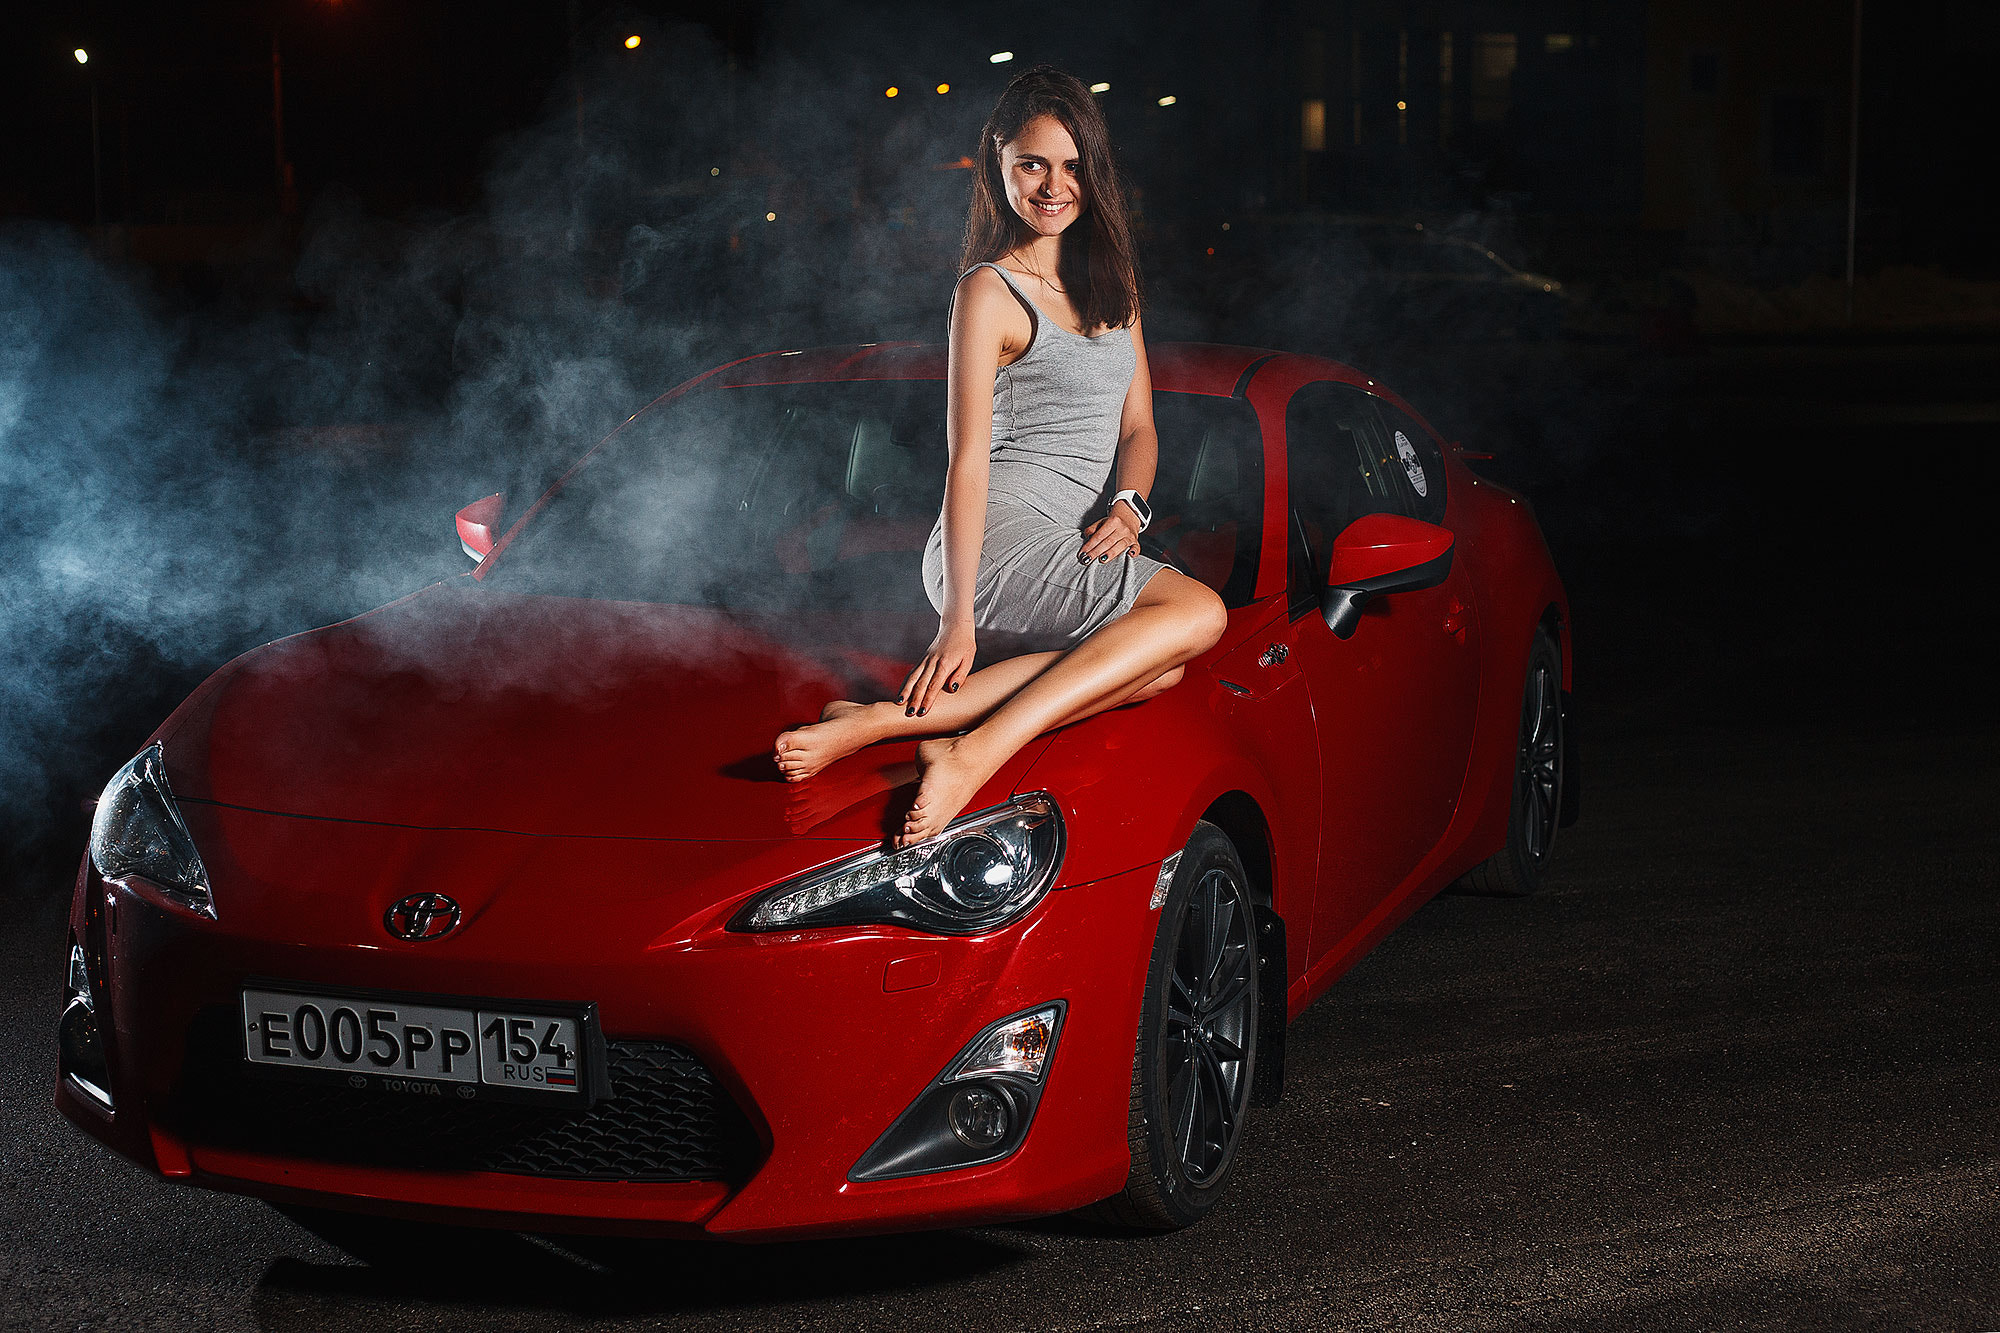 Posing girl on car bonet